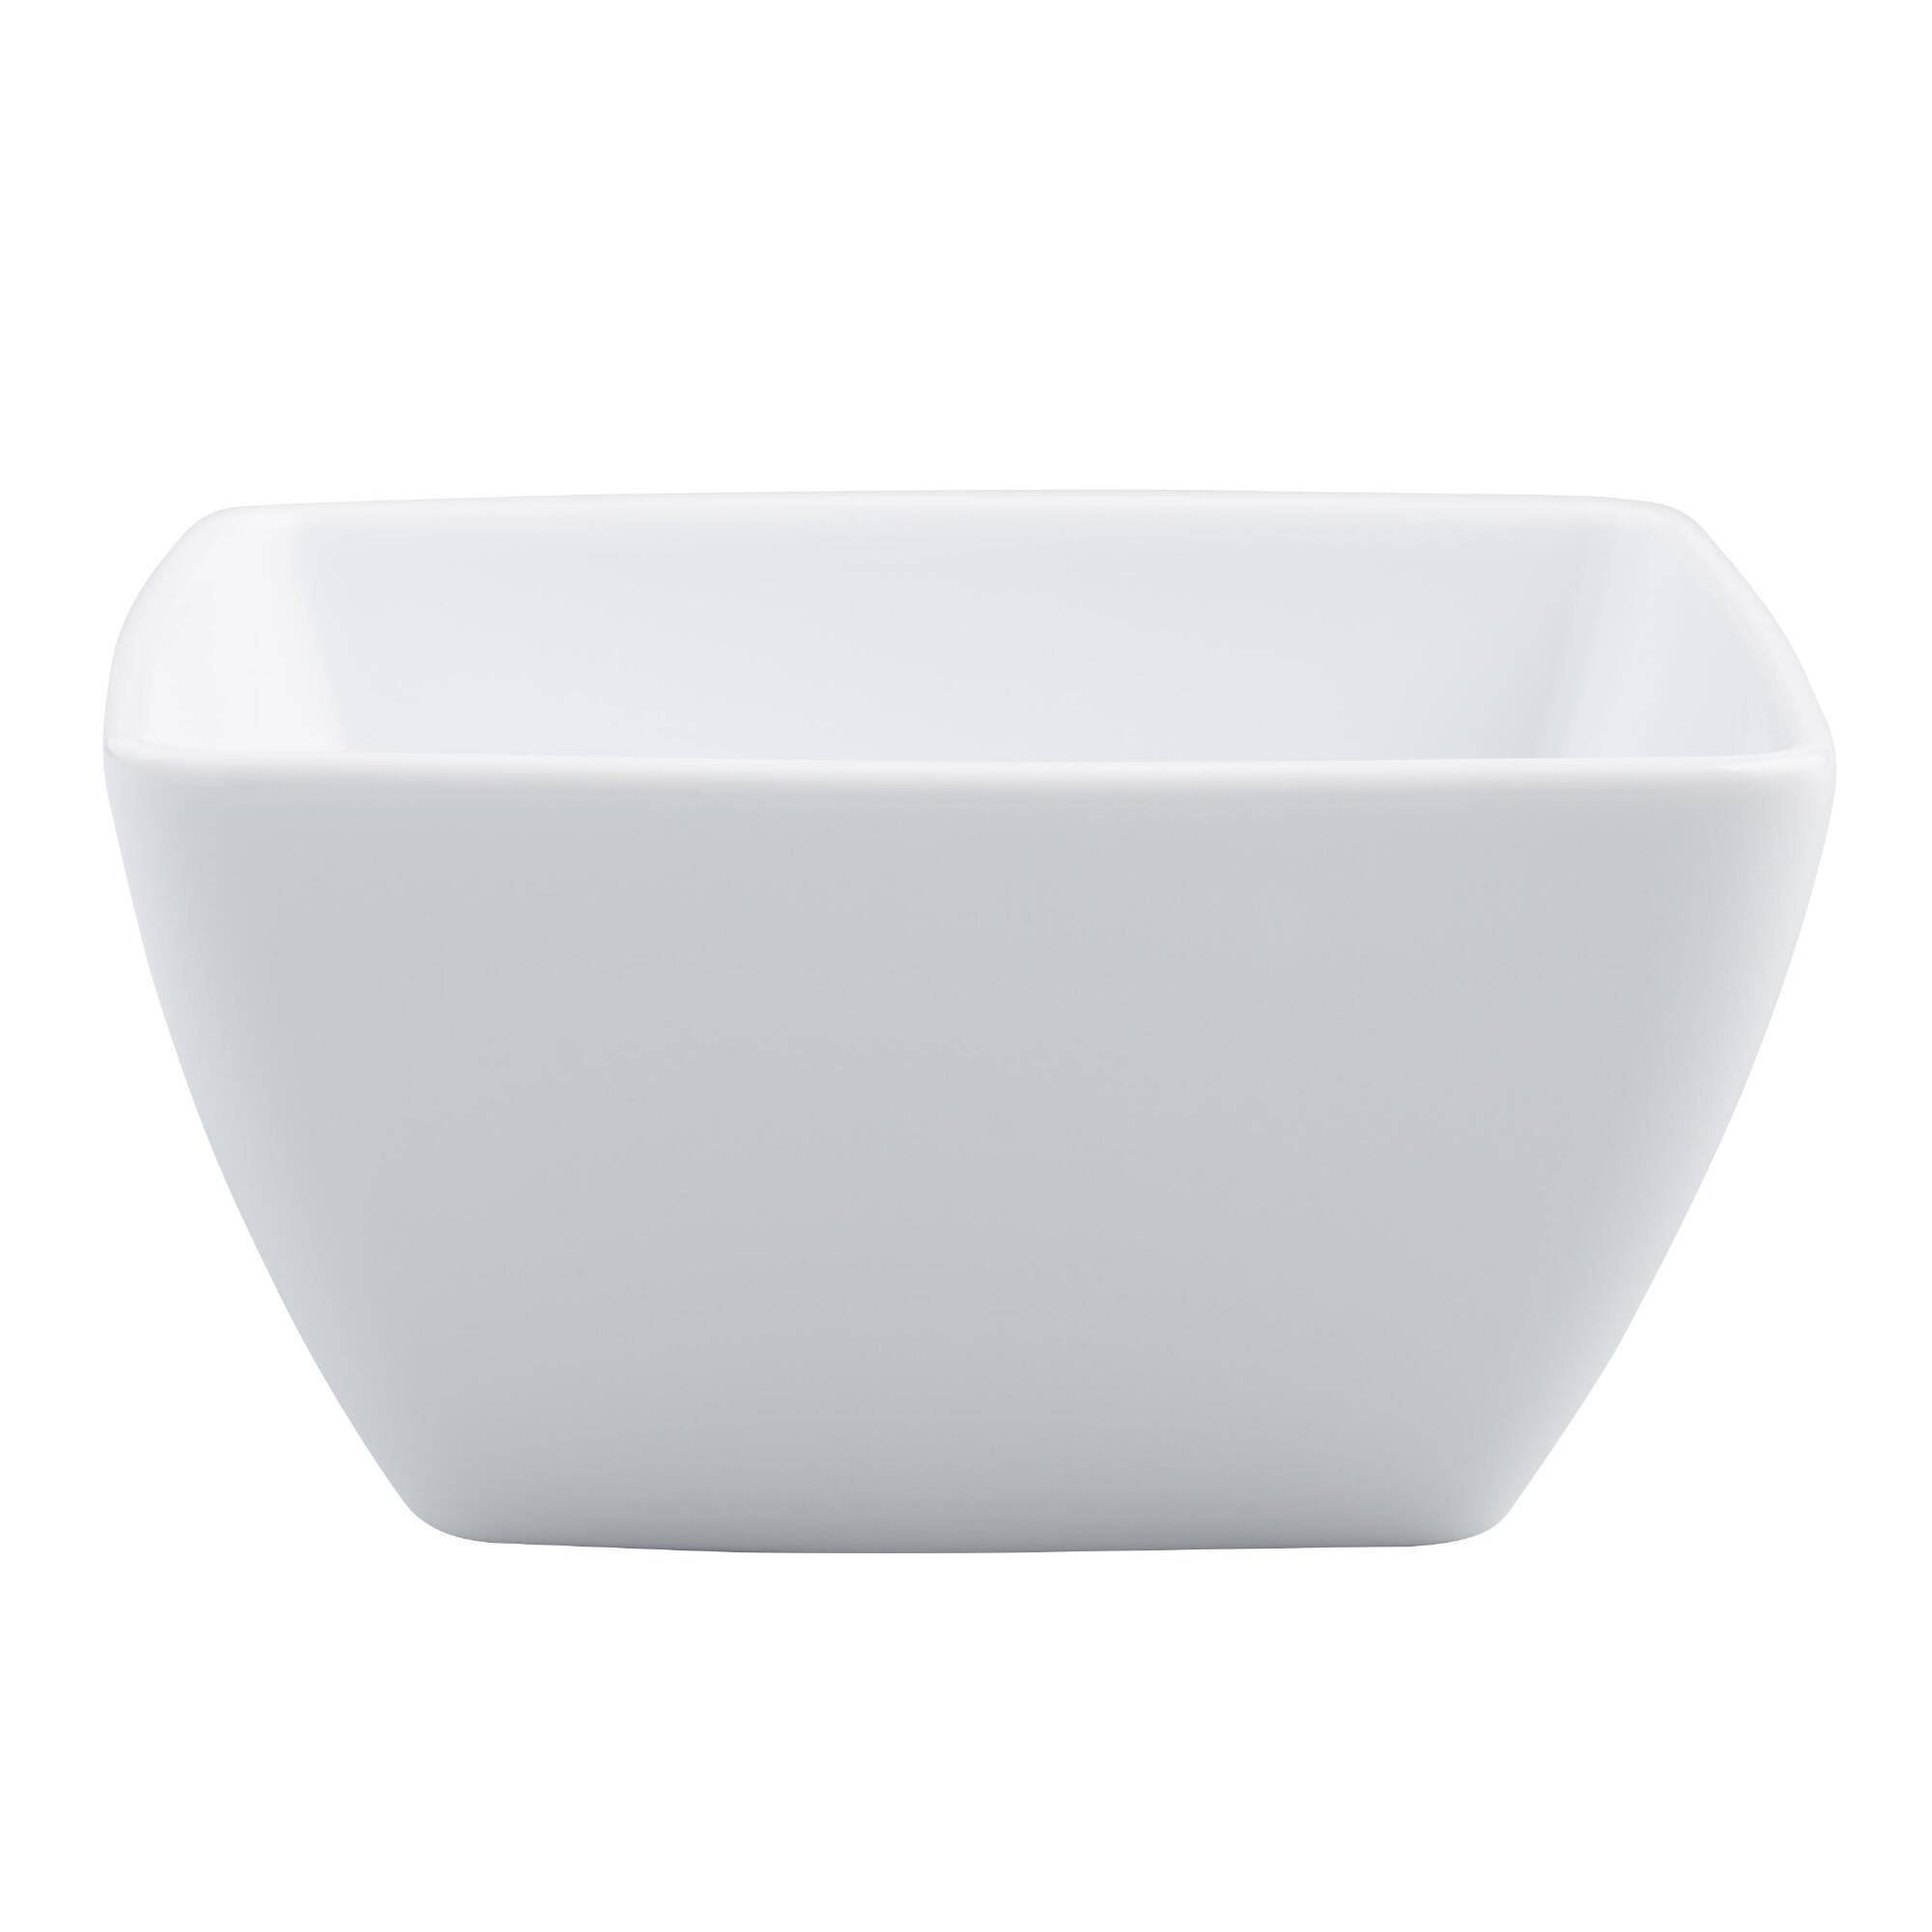 White Square Coupe Bowls, set of 4 - Porcelain by World Market